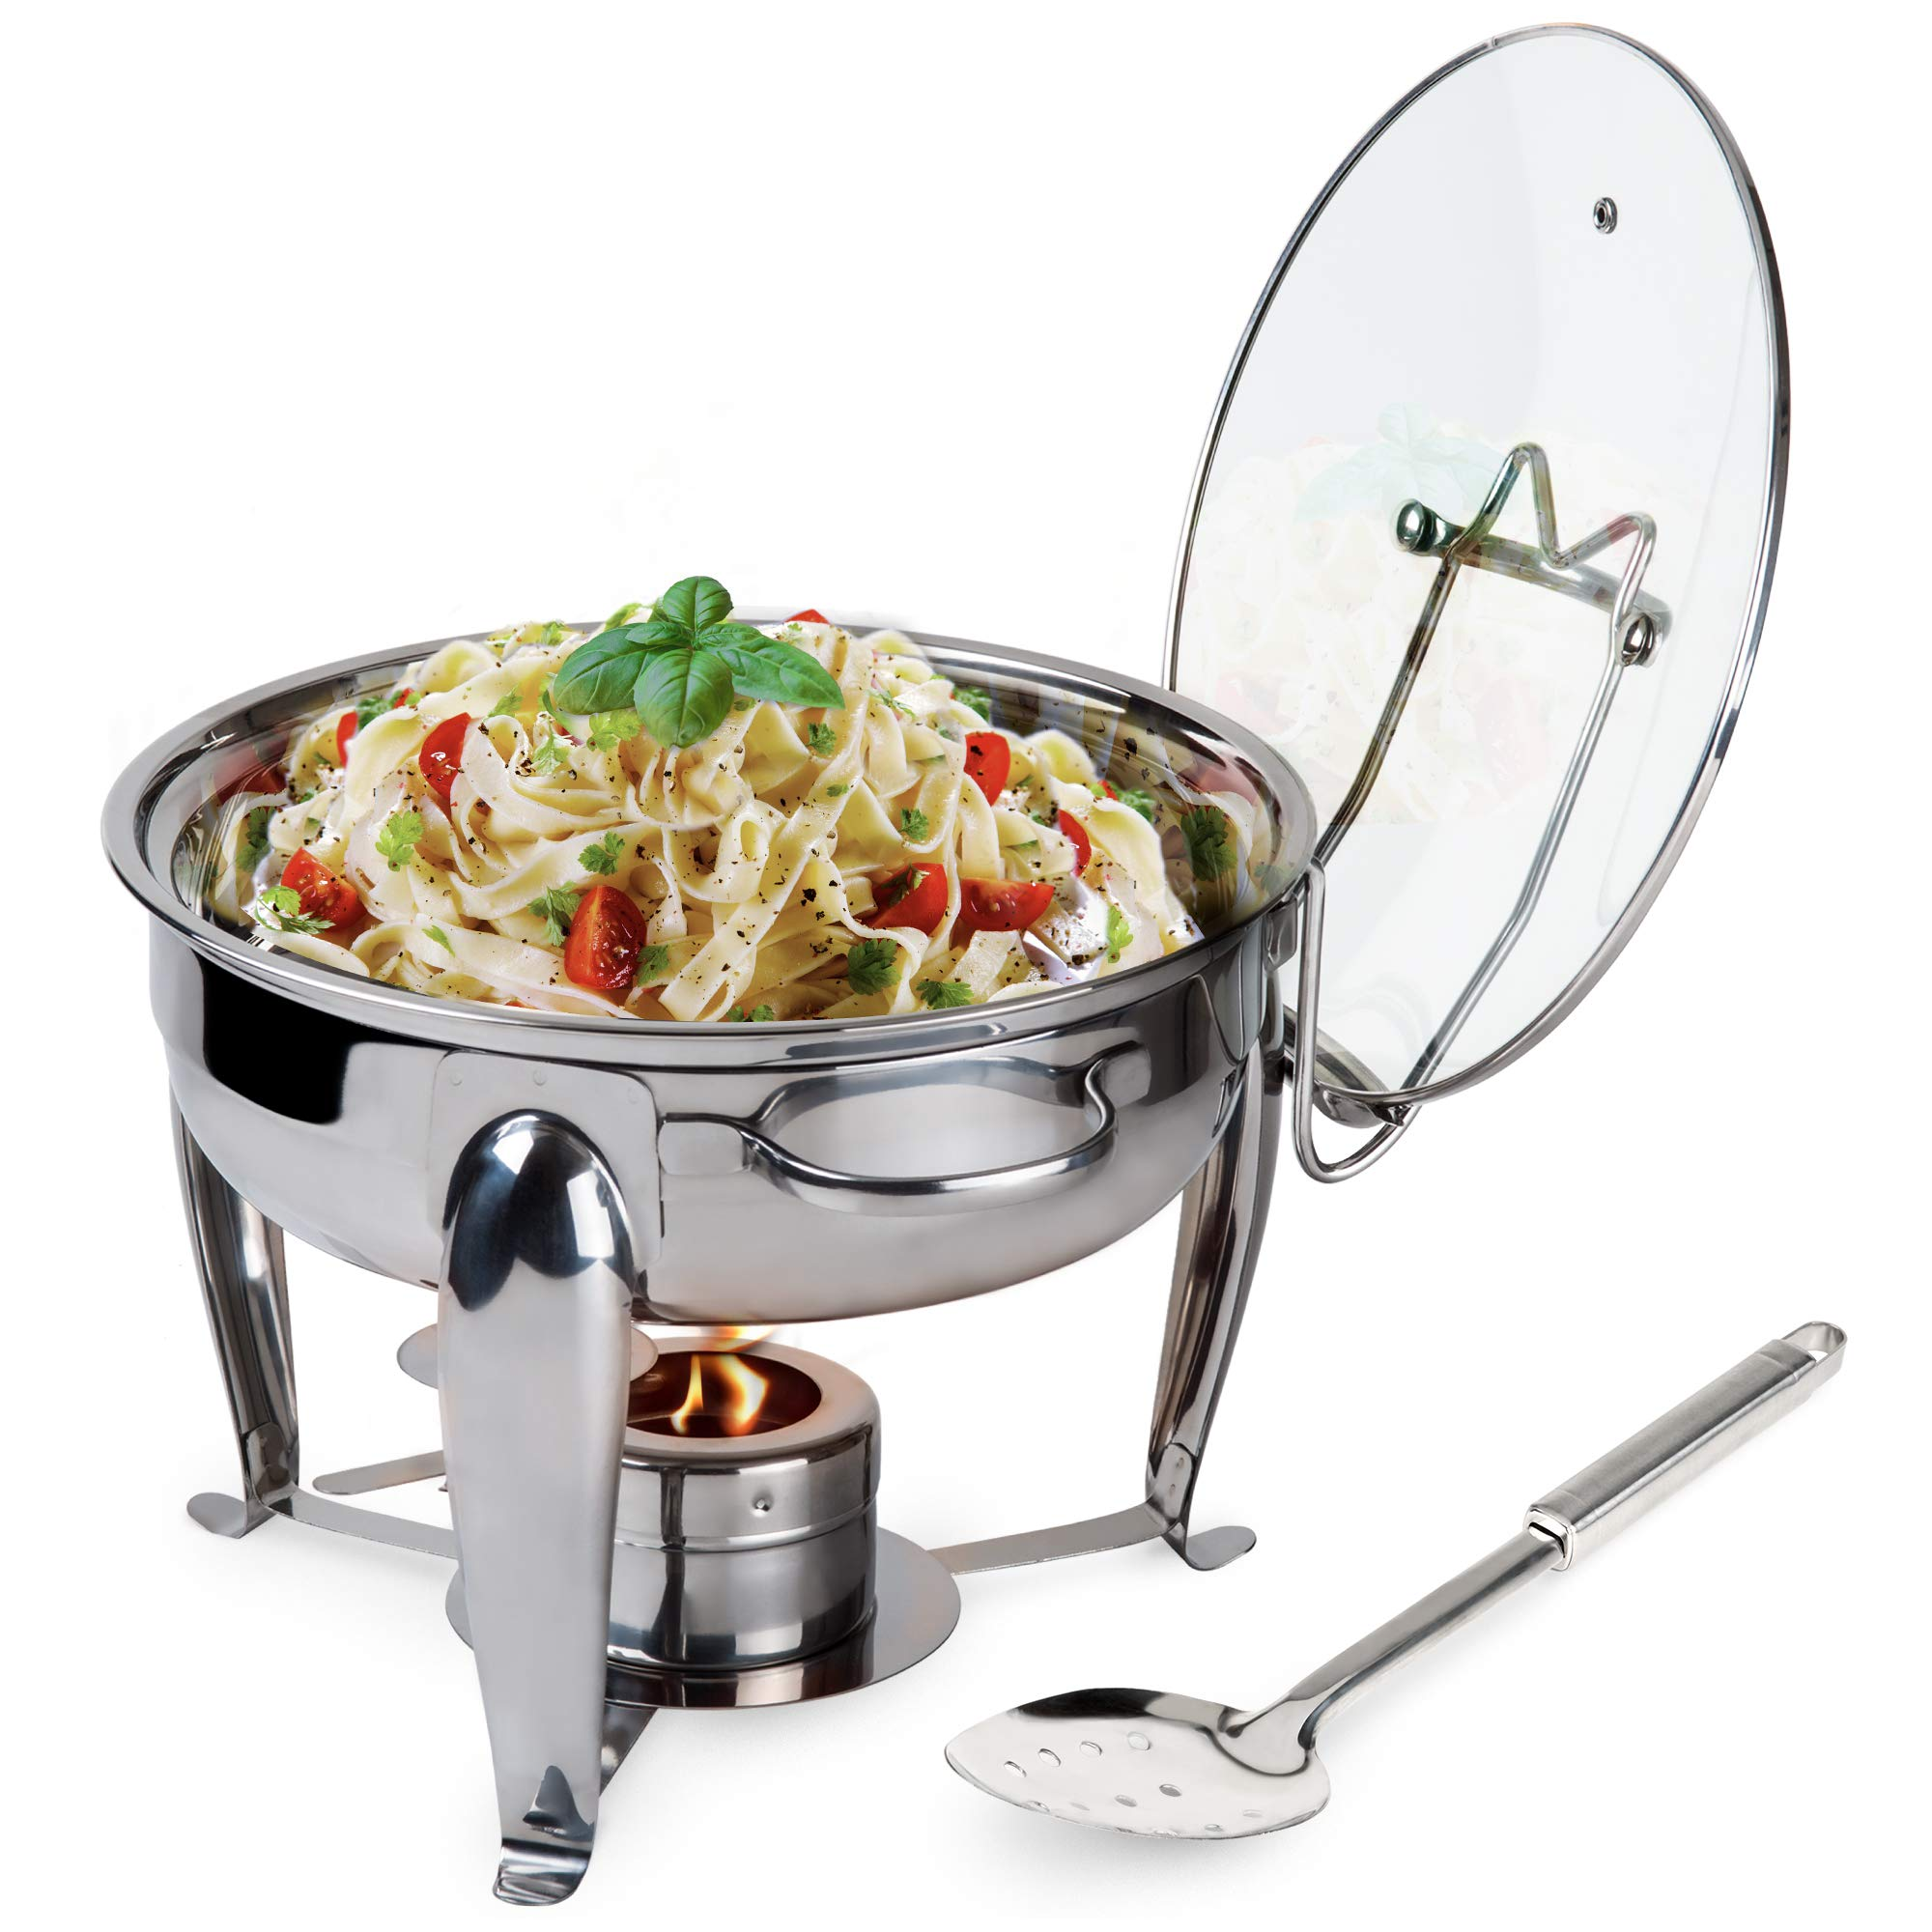 6 Quart Round Stainless Steel Chafing Dish with Bonus Slotted Spoon and Drip Tray for Lid by Traditions